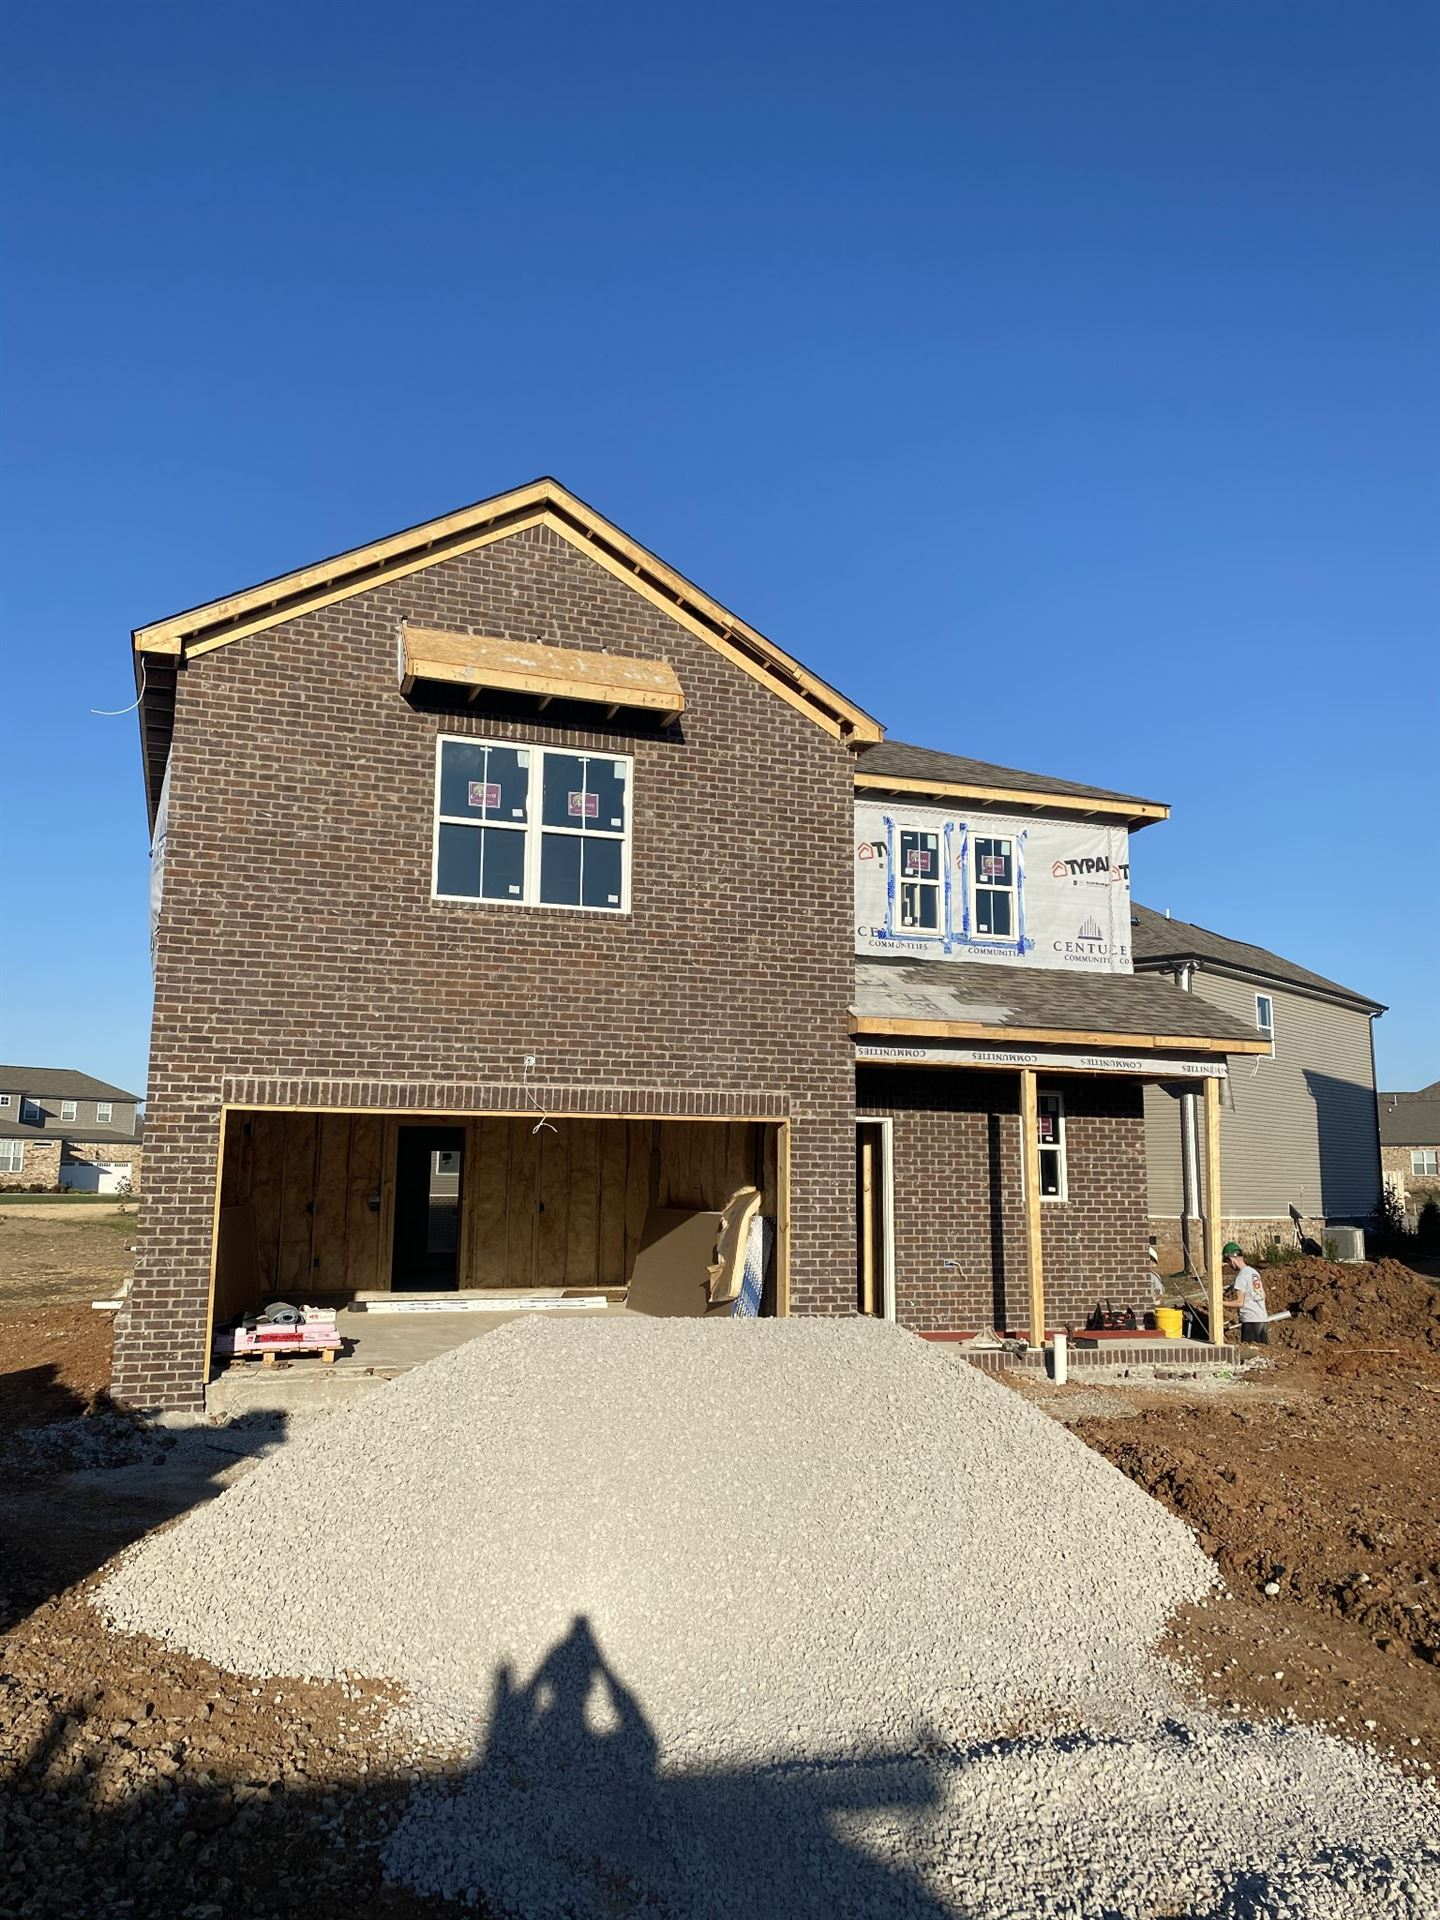 314 Disley Way (Lot 121), Murfreesboro, TN 37128 - MLS#: 2192652